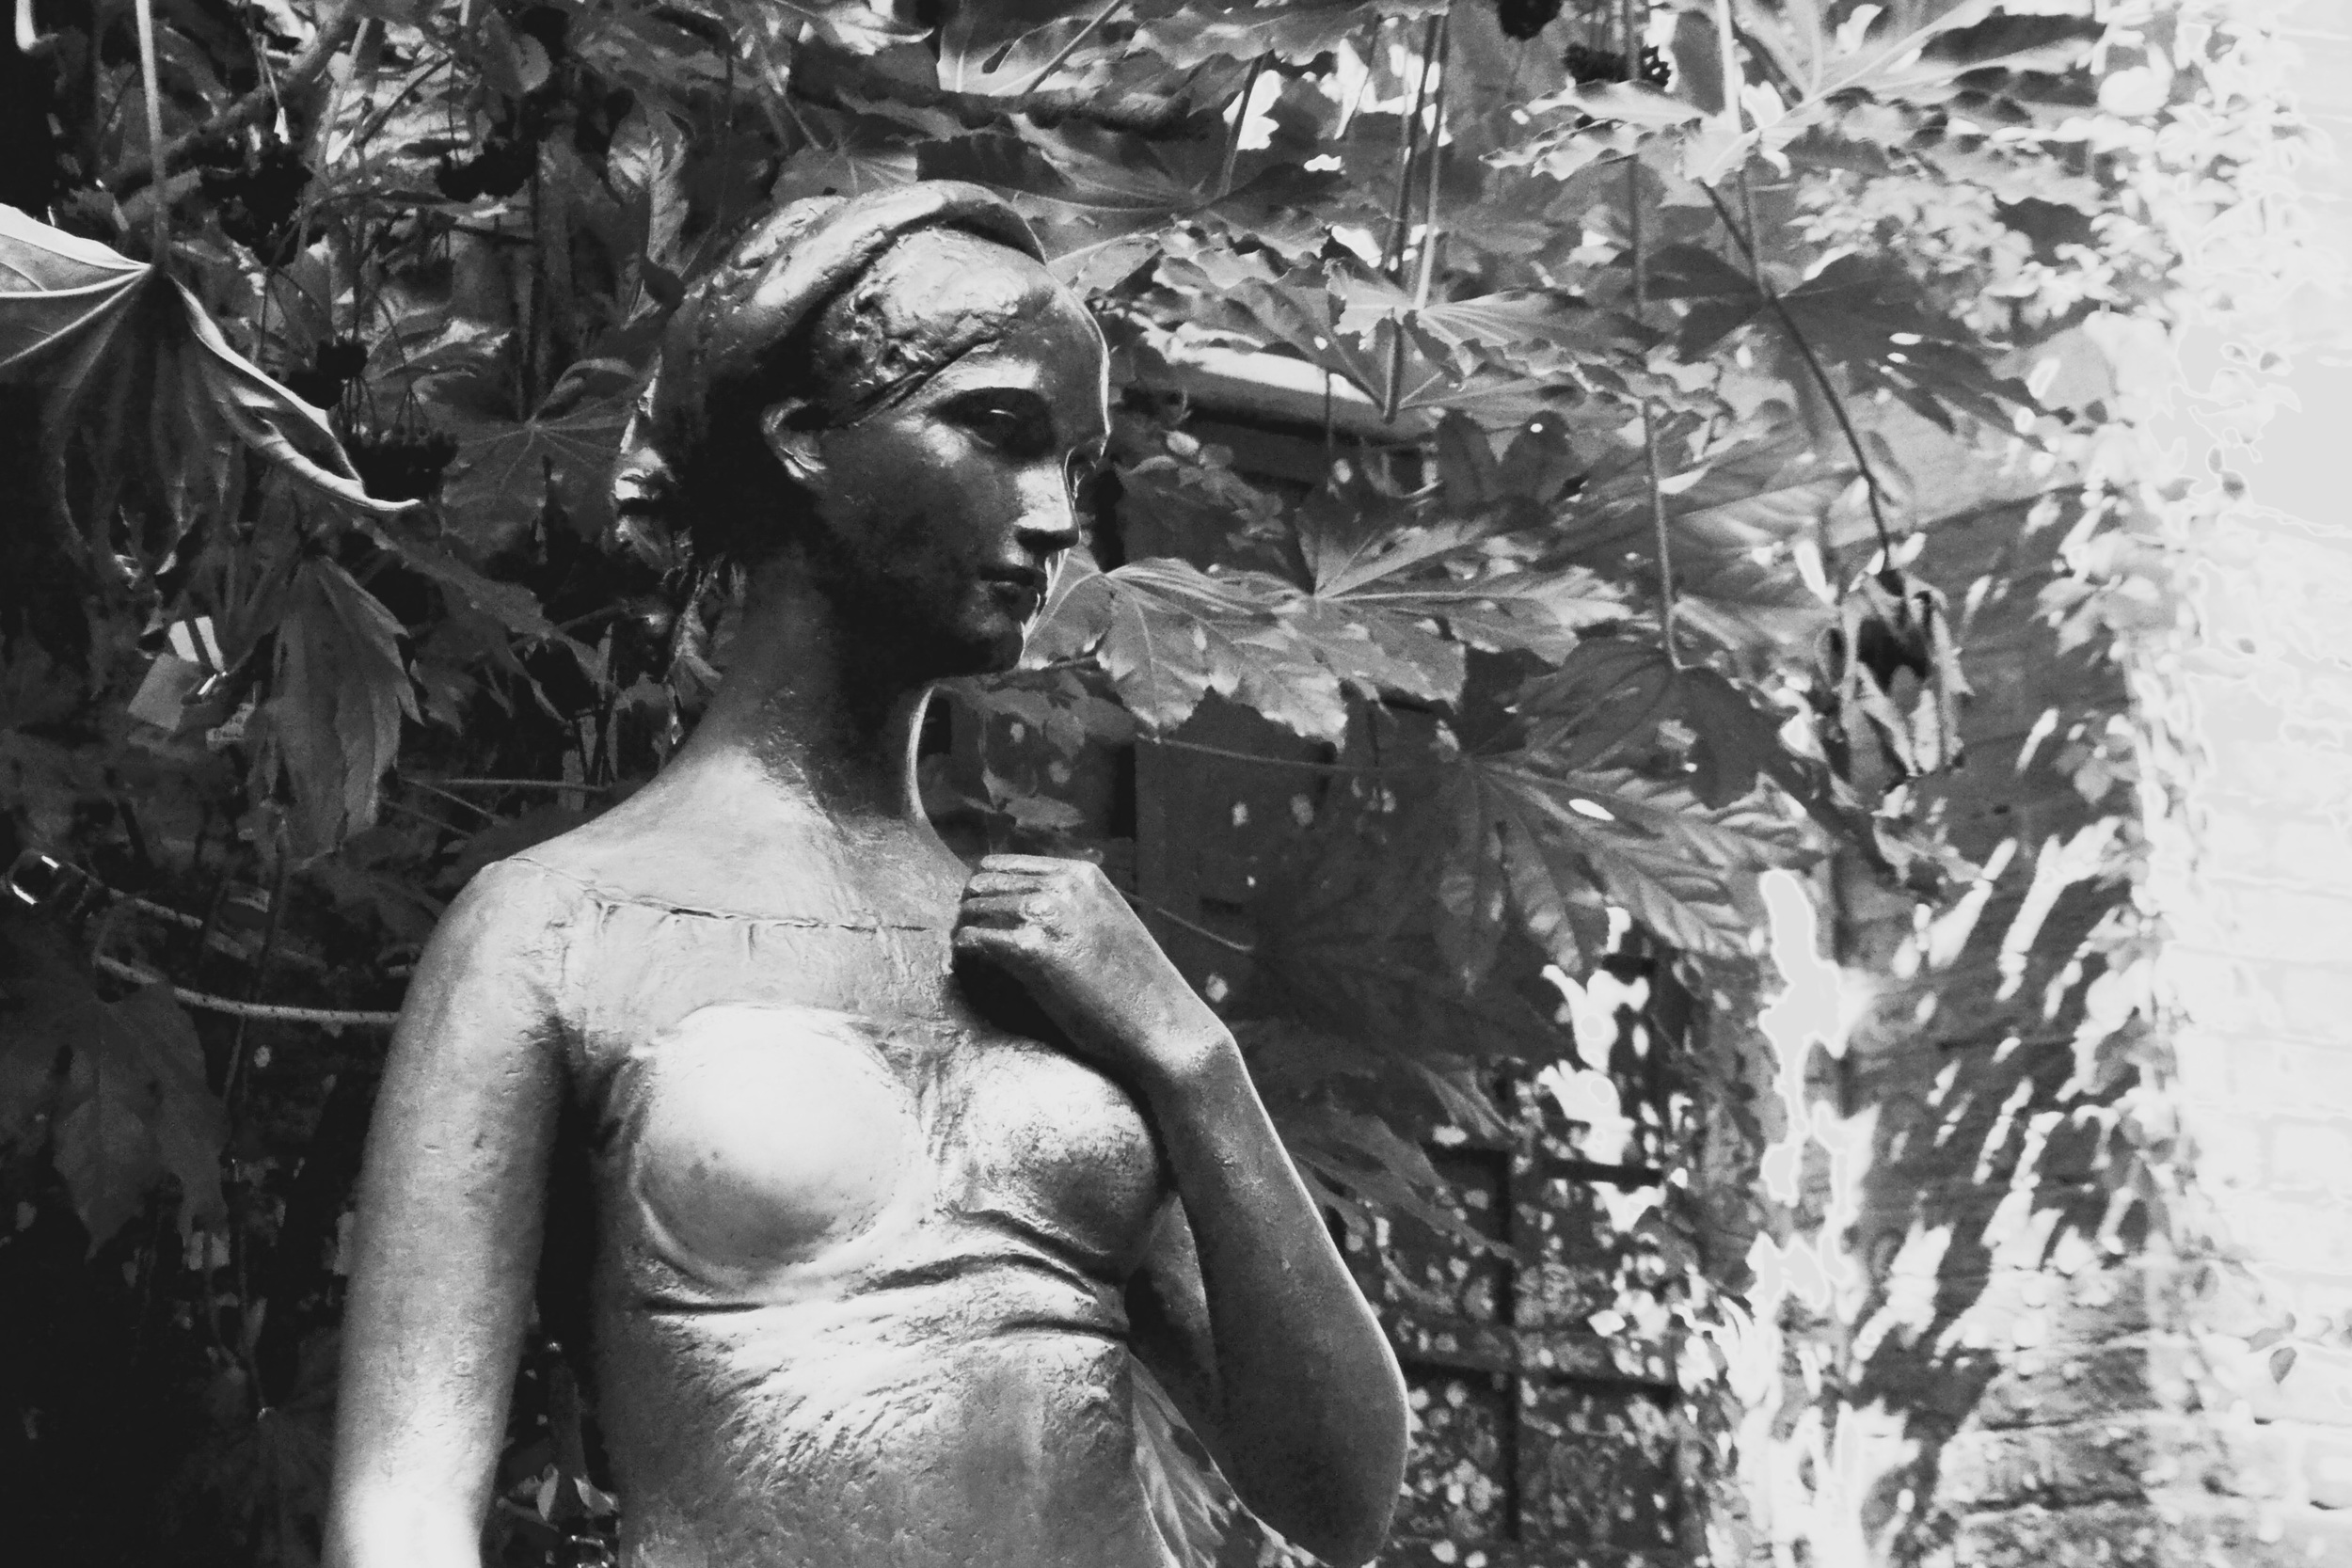 Giulietta, with her polished bust: a result of frequent fondling from passers-by.